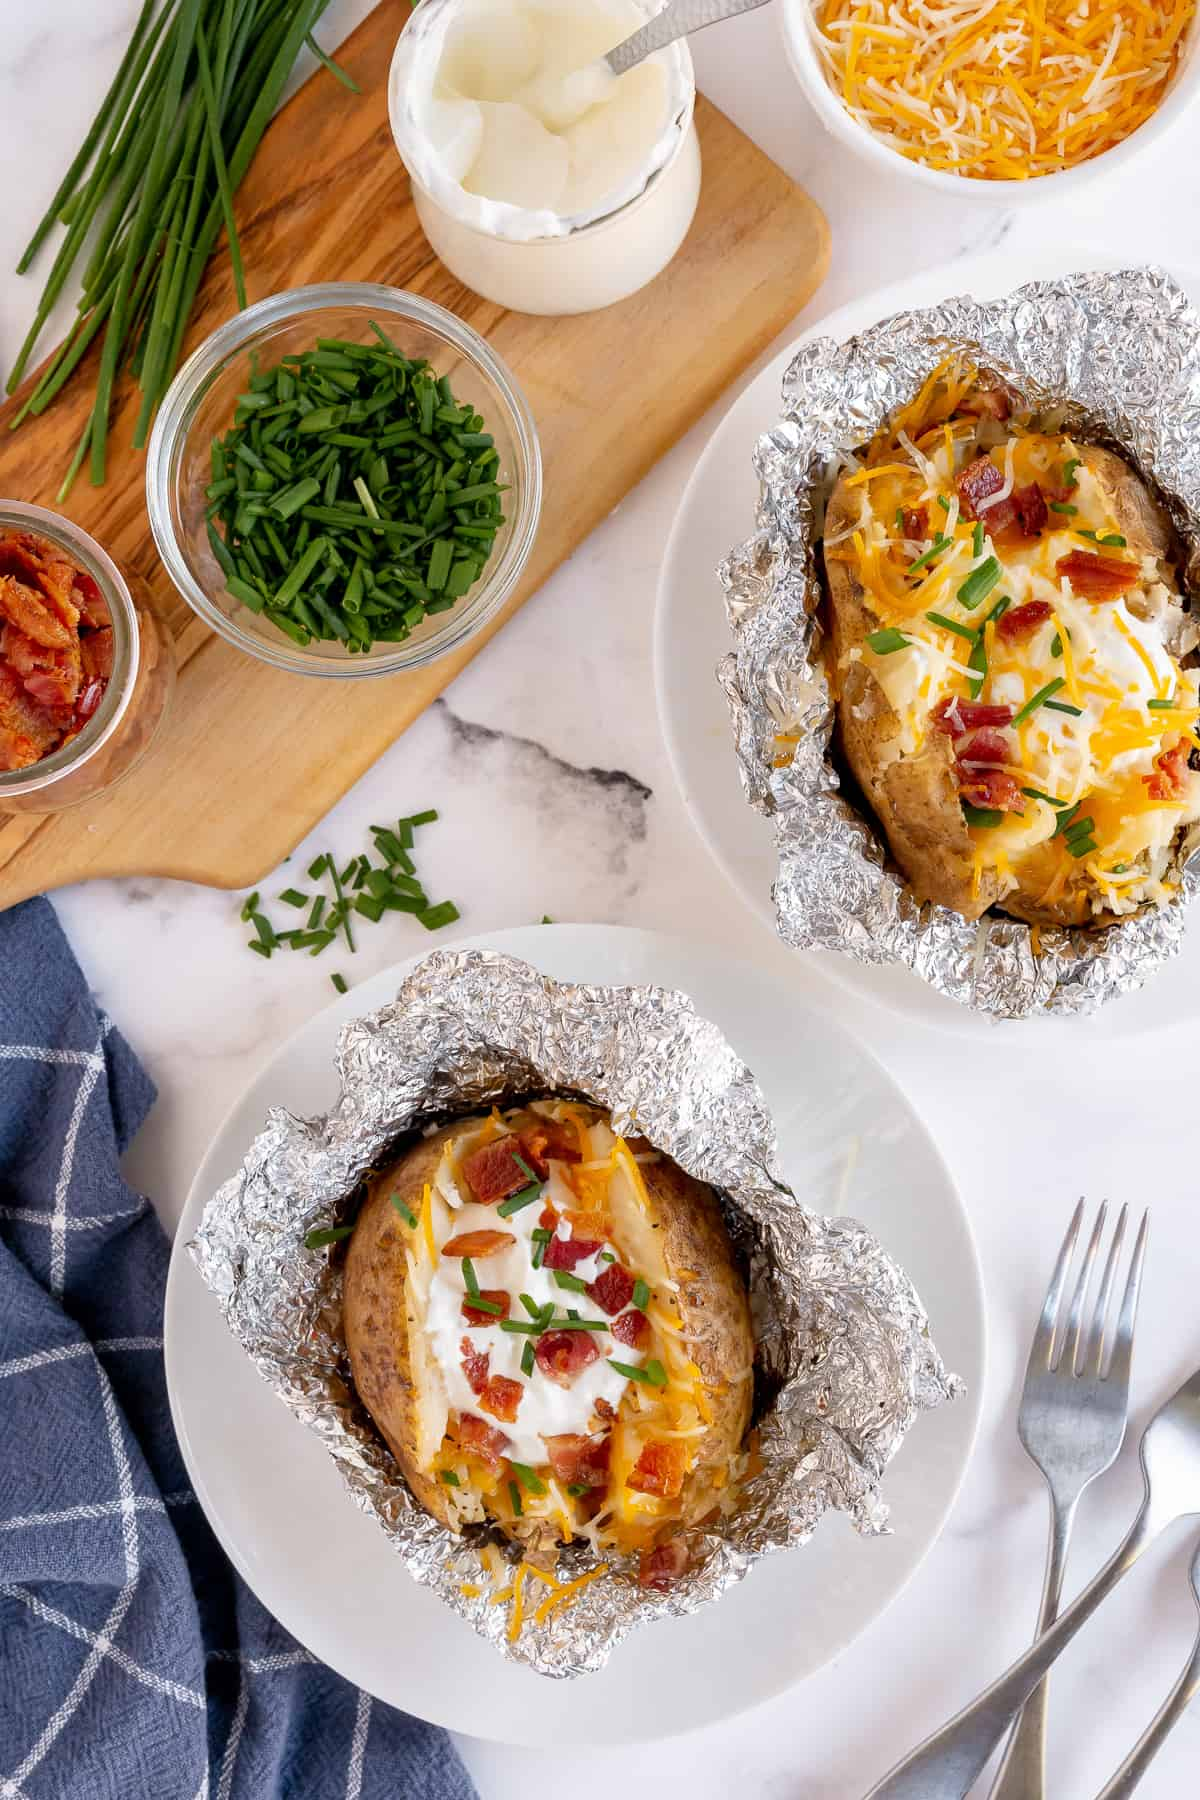 Two baked potatoes with toppings on plates.